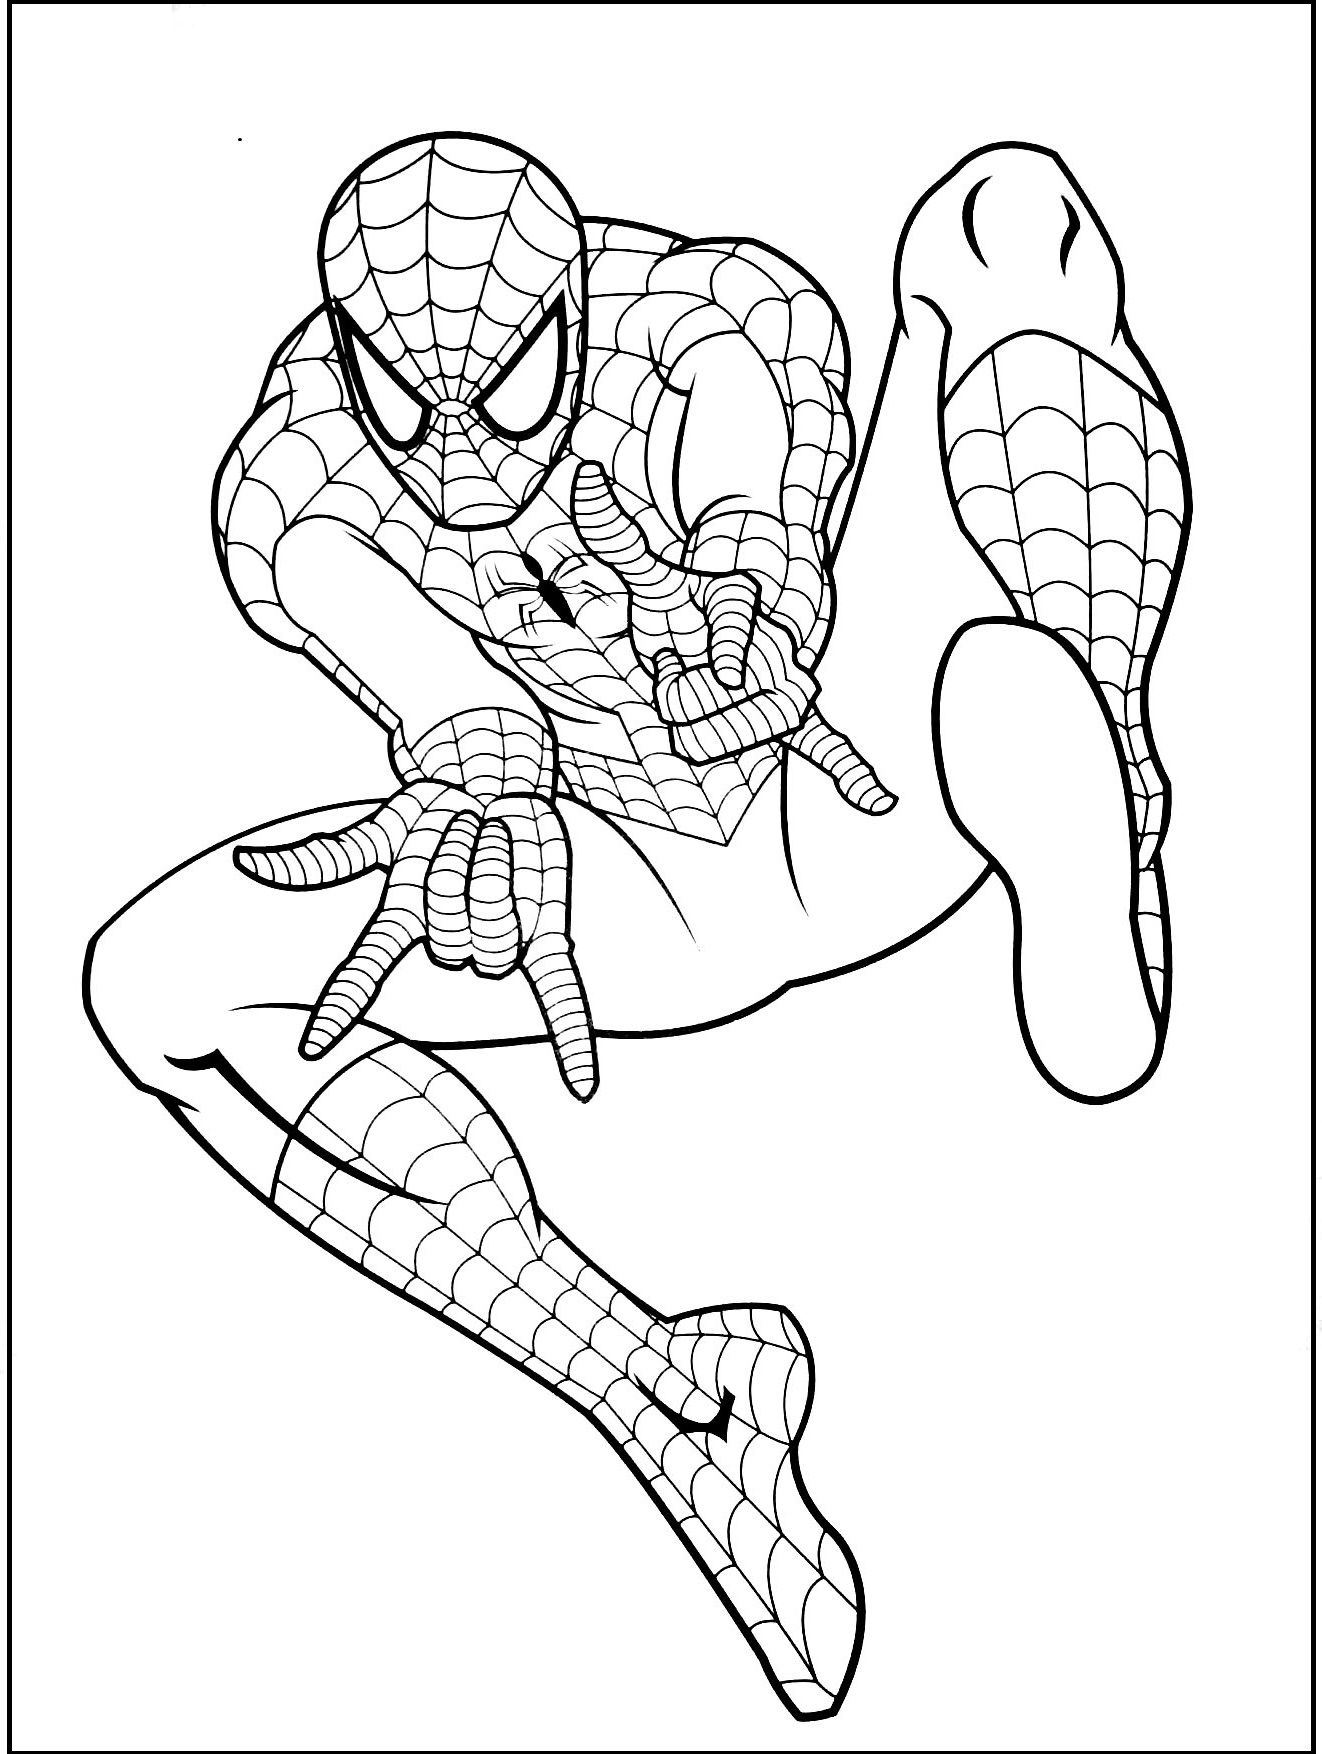 Spiderman Gratuit Coloring Picture For Kids Spiderman